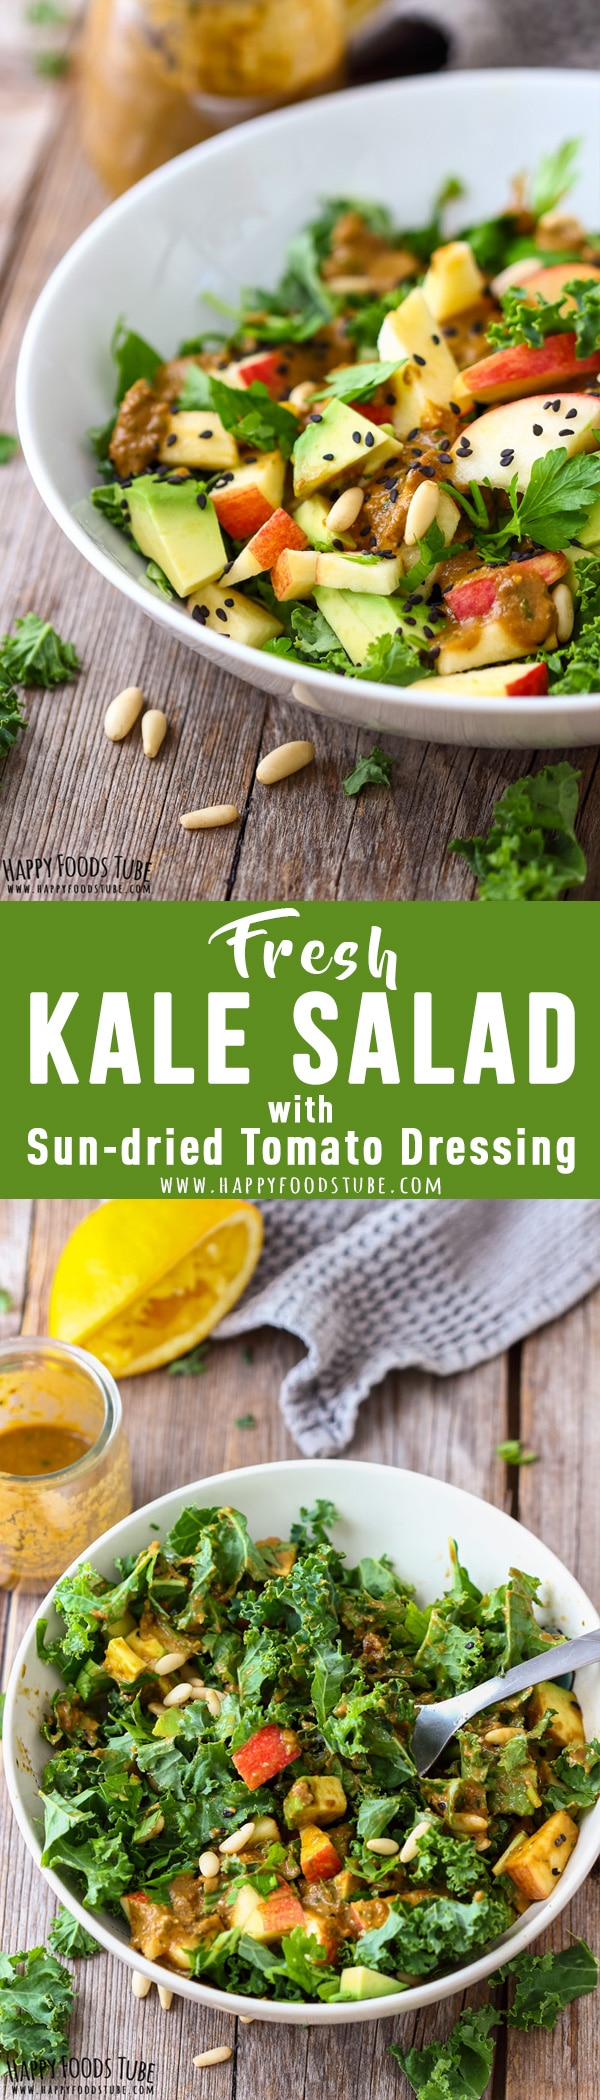 Fresh kale salad with sun-dried tomato dressing is healthy and delicious at the same time. Packed with nutrients this salad is a must try this New Year! #kale #salad #dressing #recipes #raw #detox #healthy #sundried #tomato #newyear